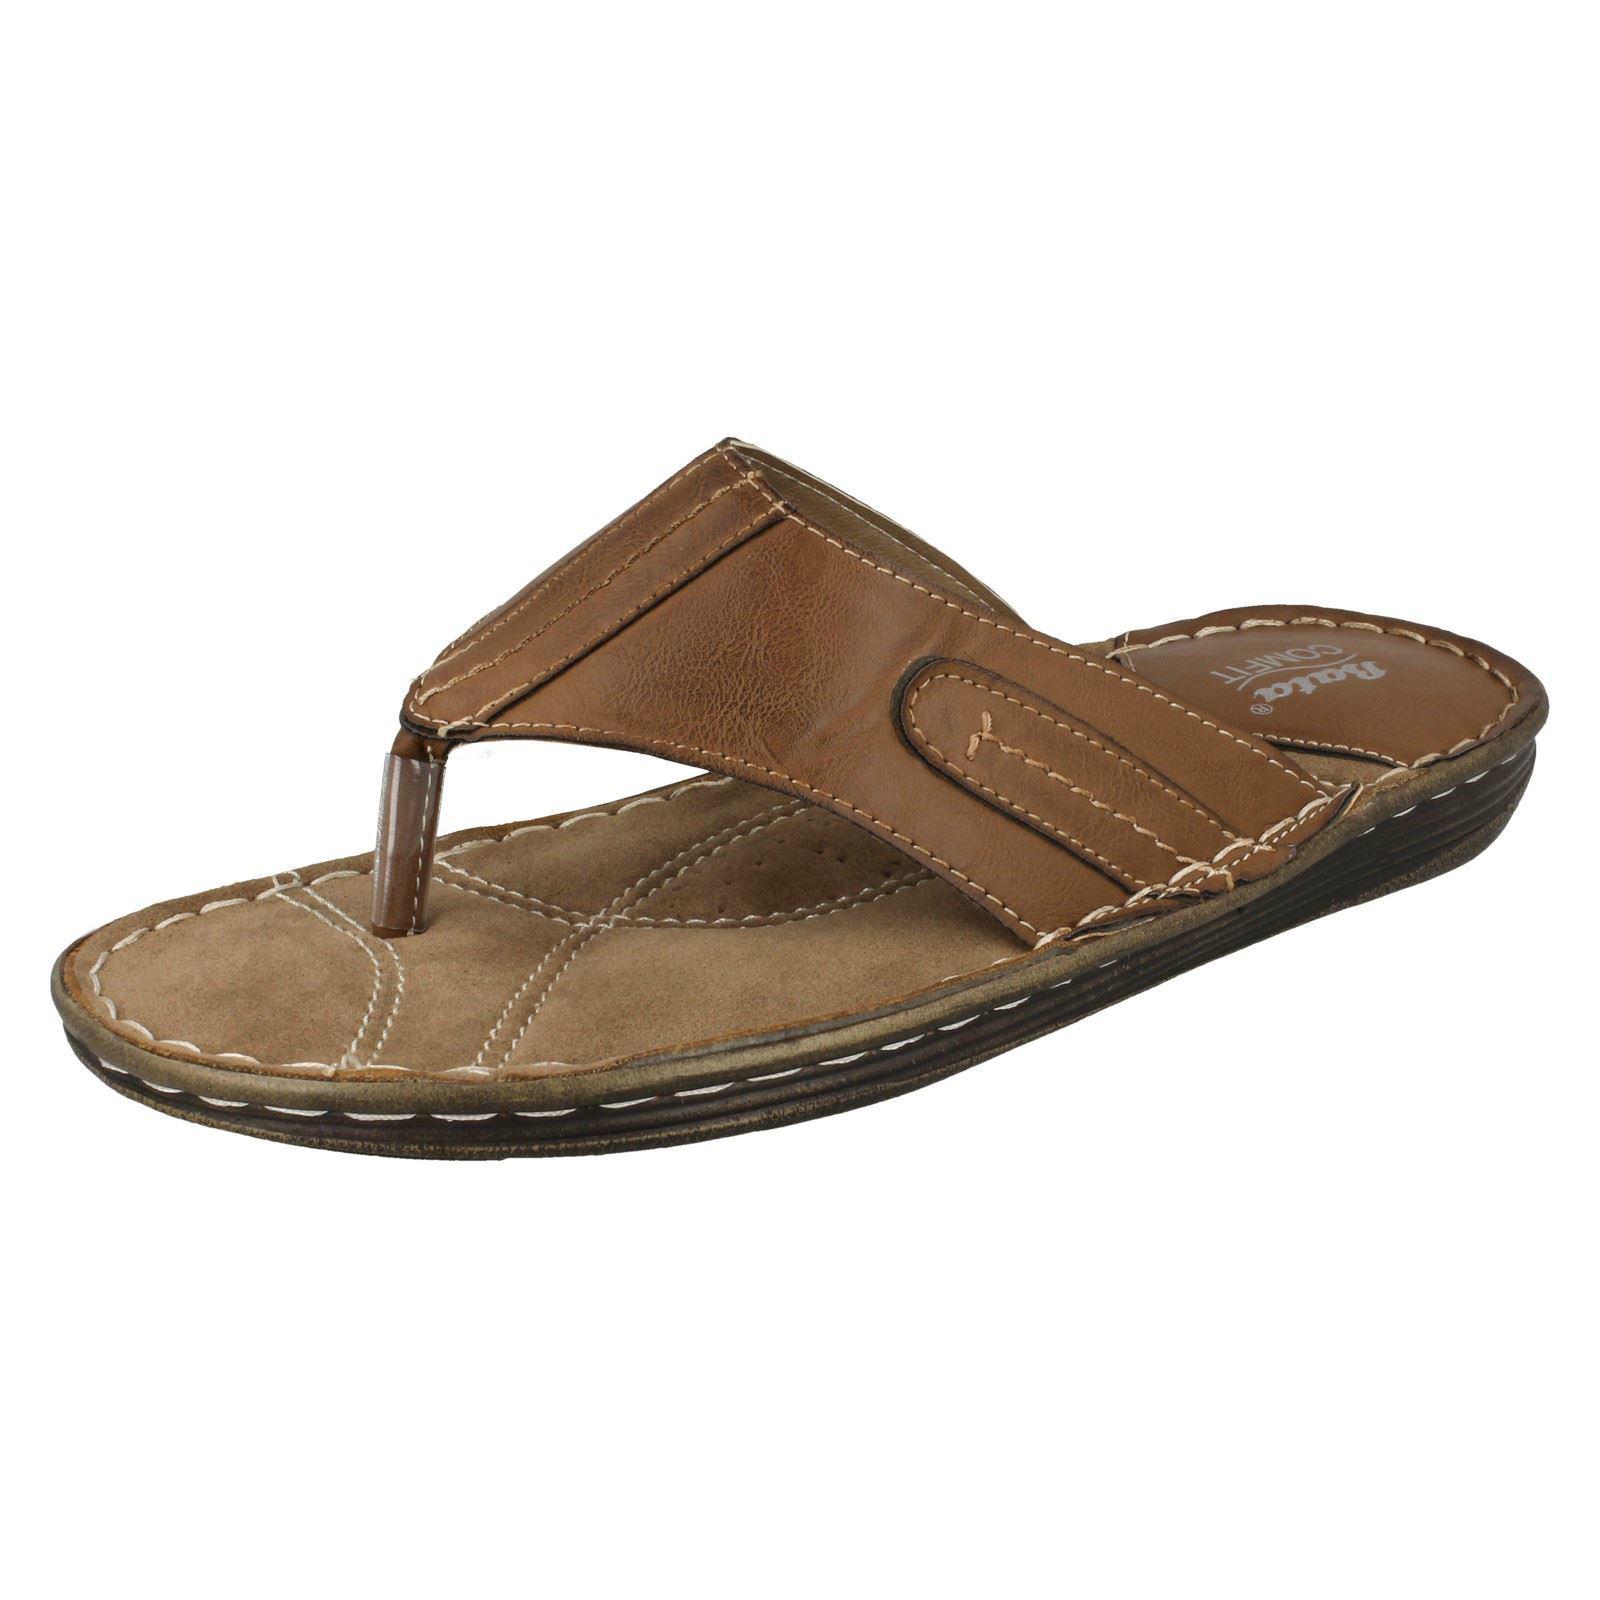 1638b4ff80f3 Mens Bata Toe Post Sandals  861-4601  Brown UK 6 Standard. About this  product. Picture 1 of 10  Picture 2 of 10 ...